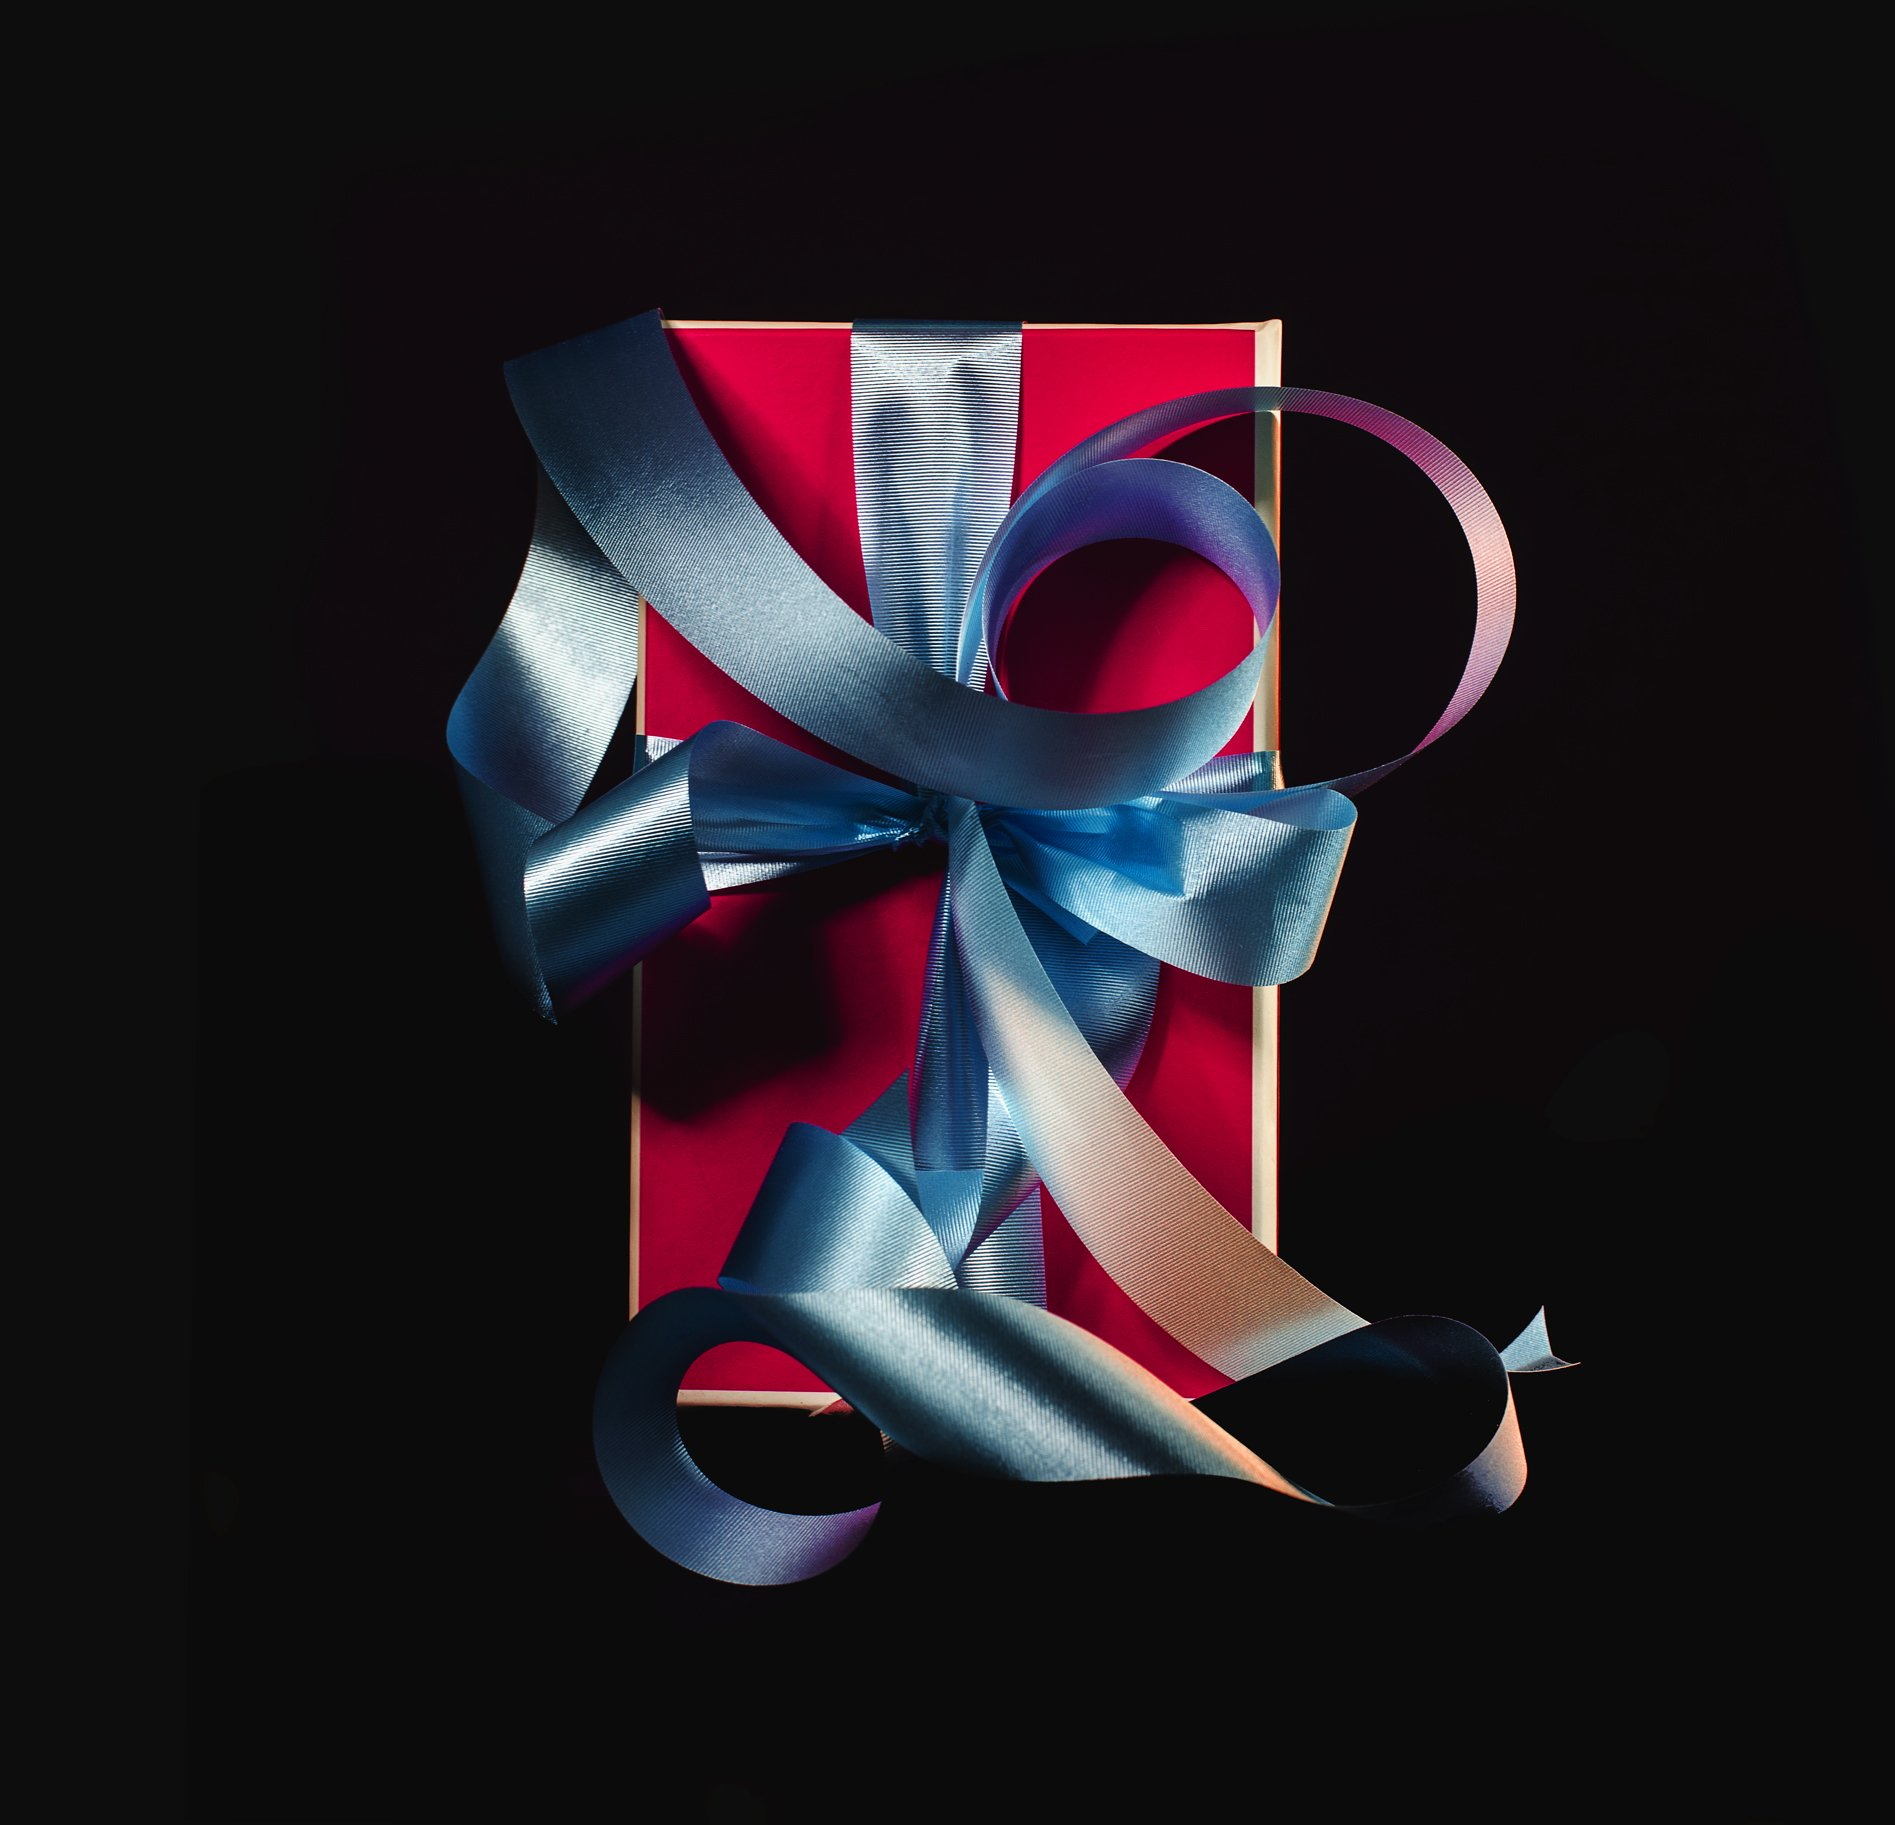 Gift wrapped 4460x4460